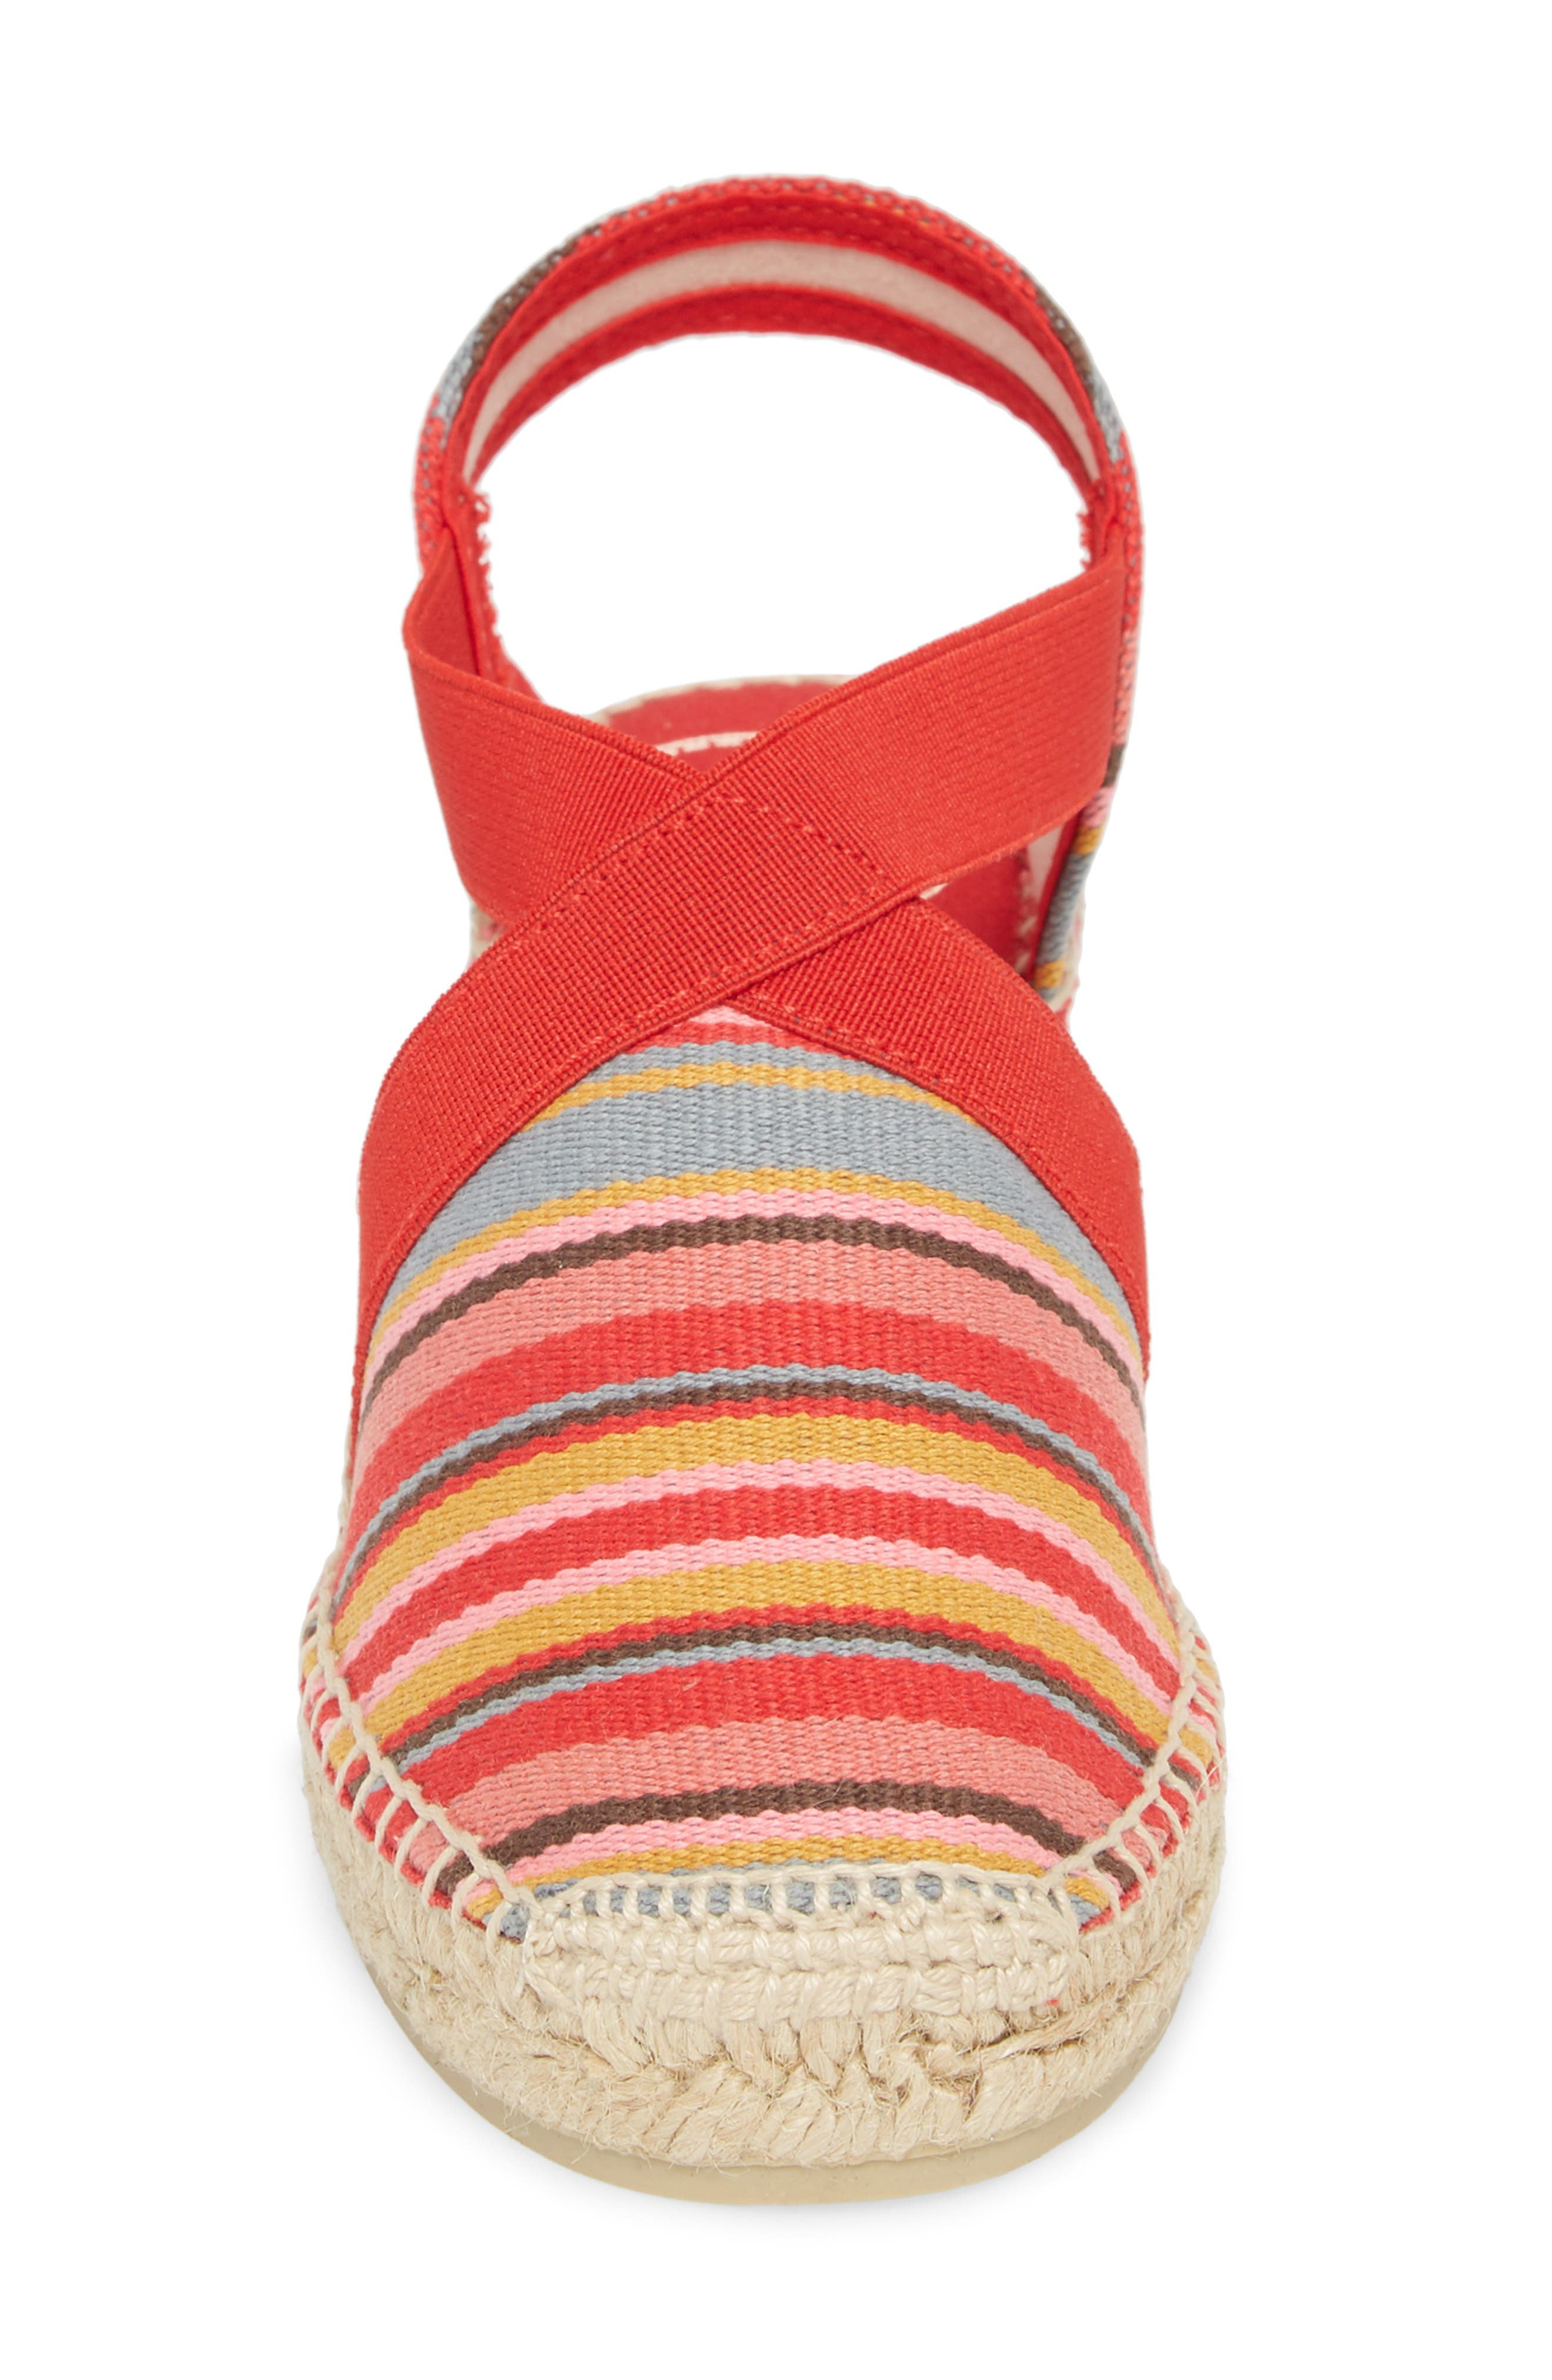 'Tarbes' Espadrille Wedge Sandal,                             Alternate thumbnail 4, color,                             Red Fabric